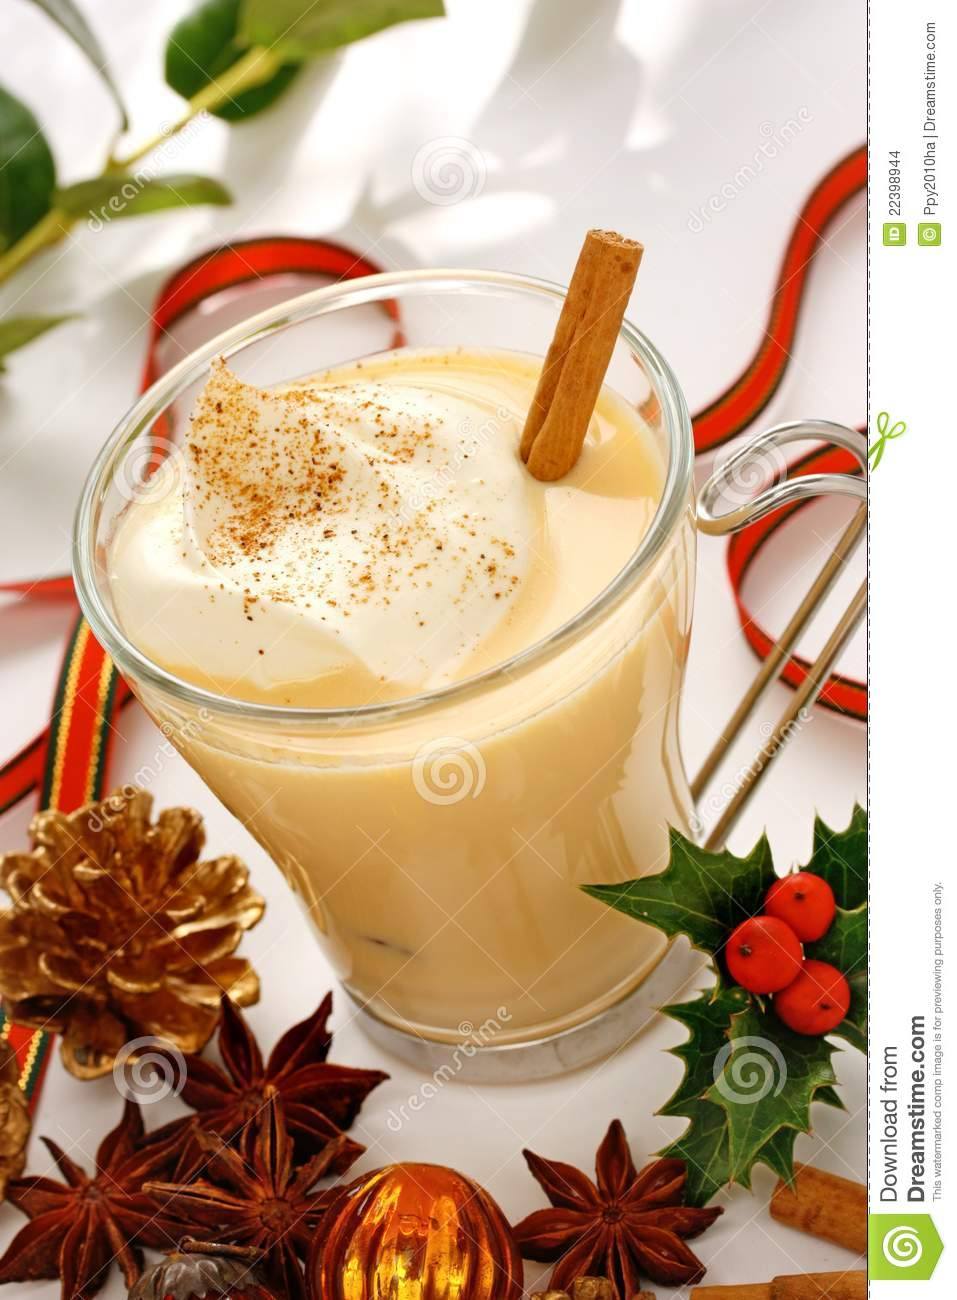 Eggnog At Christmas Time Stock Images - Image: 22398944